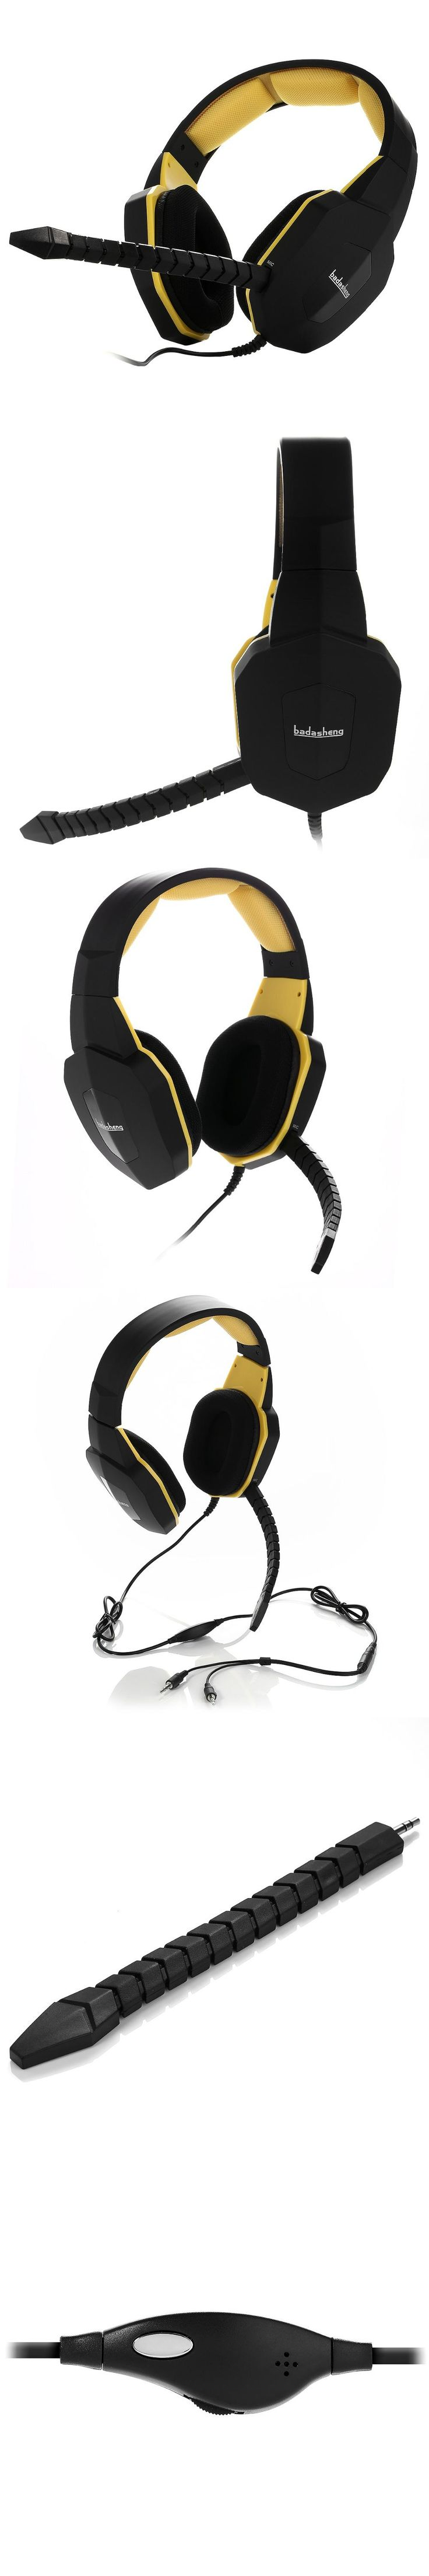 Gaming Headset for PS4 , Xbox one, Iphone , Ipad , Smartphone , Tablet , PC (Laptop & desktop) better gaming background sounds